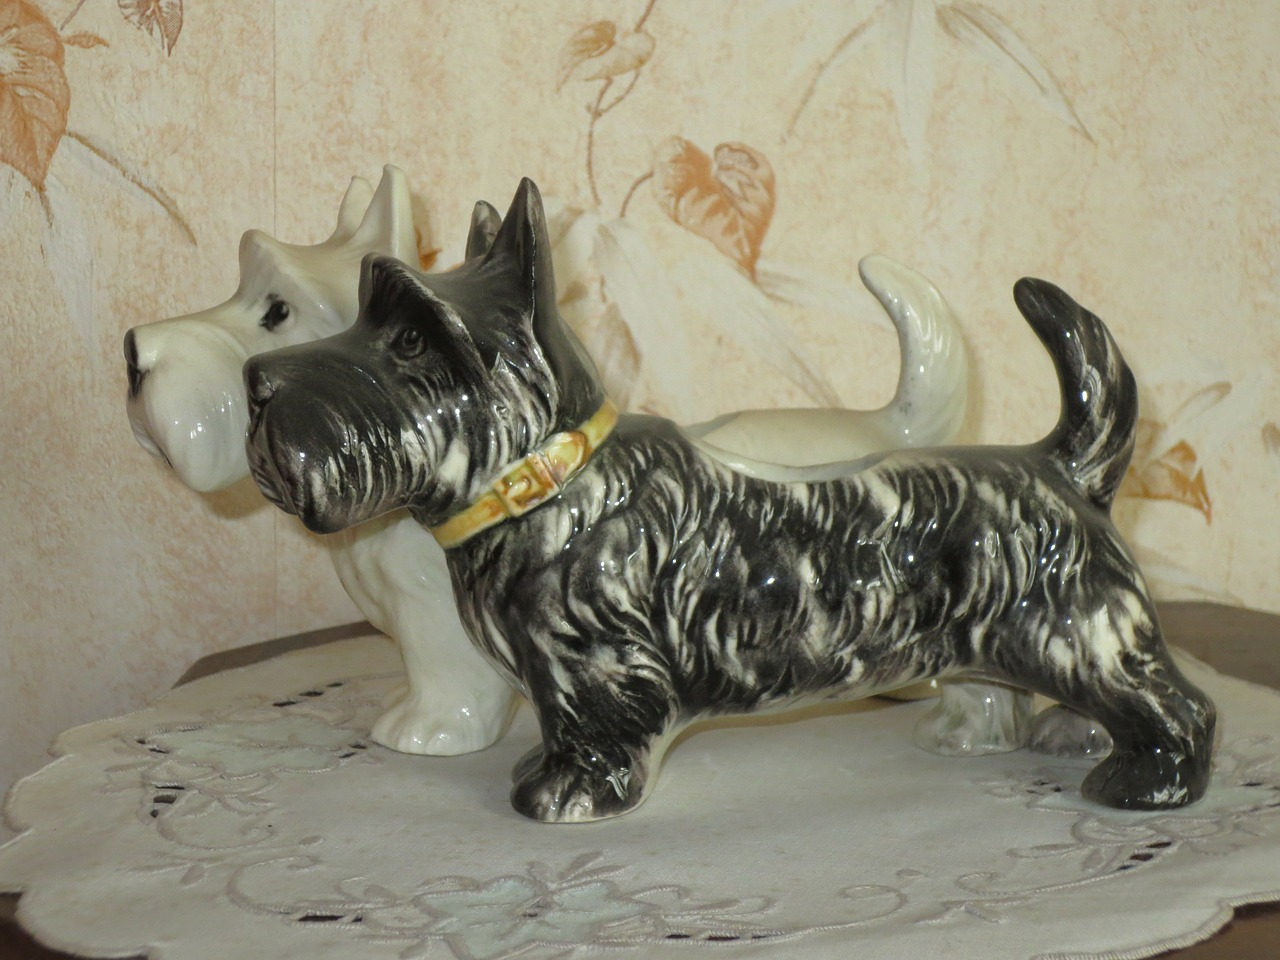 dogs,ceramic,statues,kitch,free pictures, free photos, free images, royalty free, free illustrations, public domain